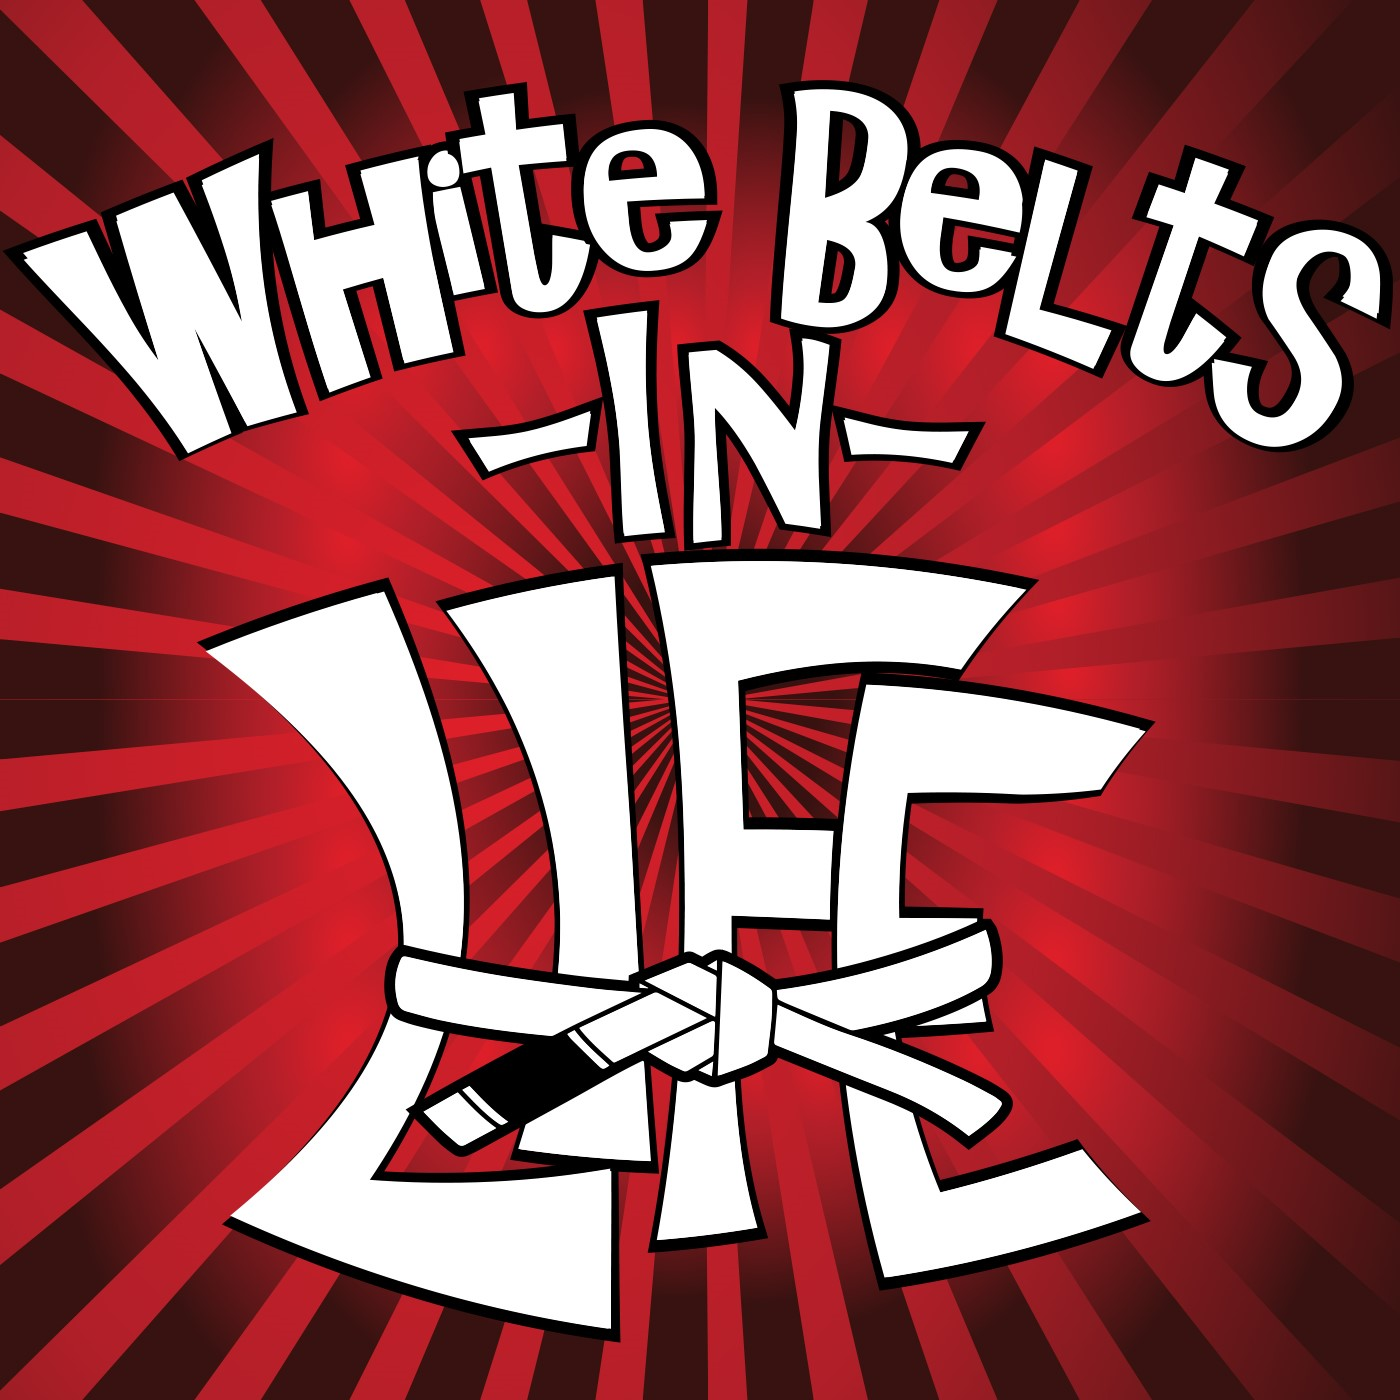 White 20belts 20in 20life 20logo